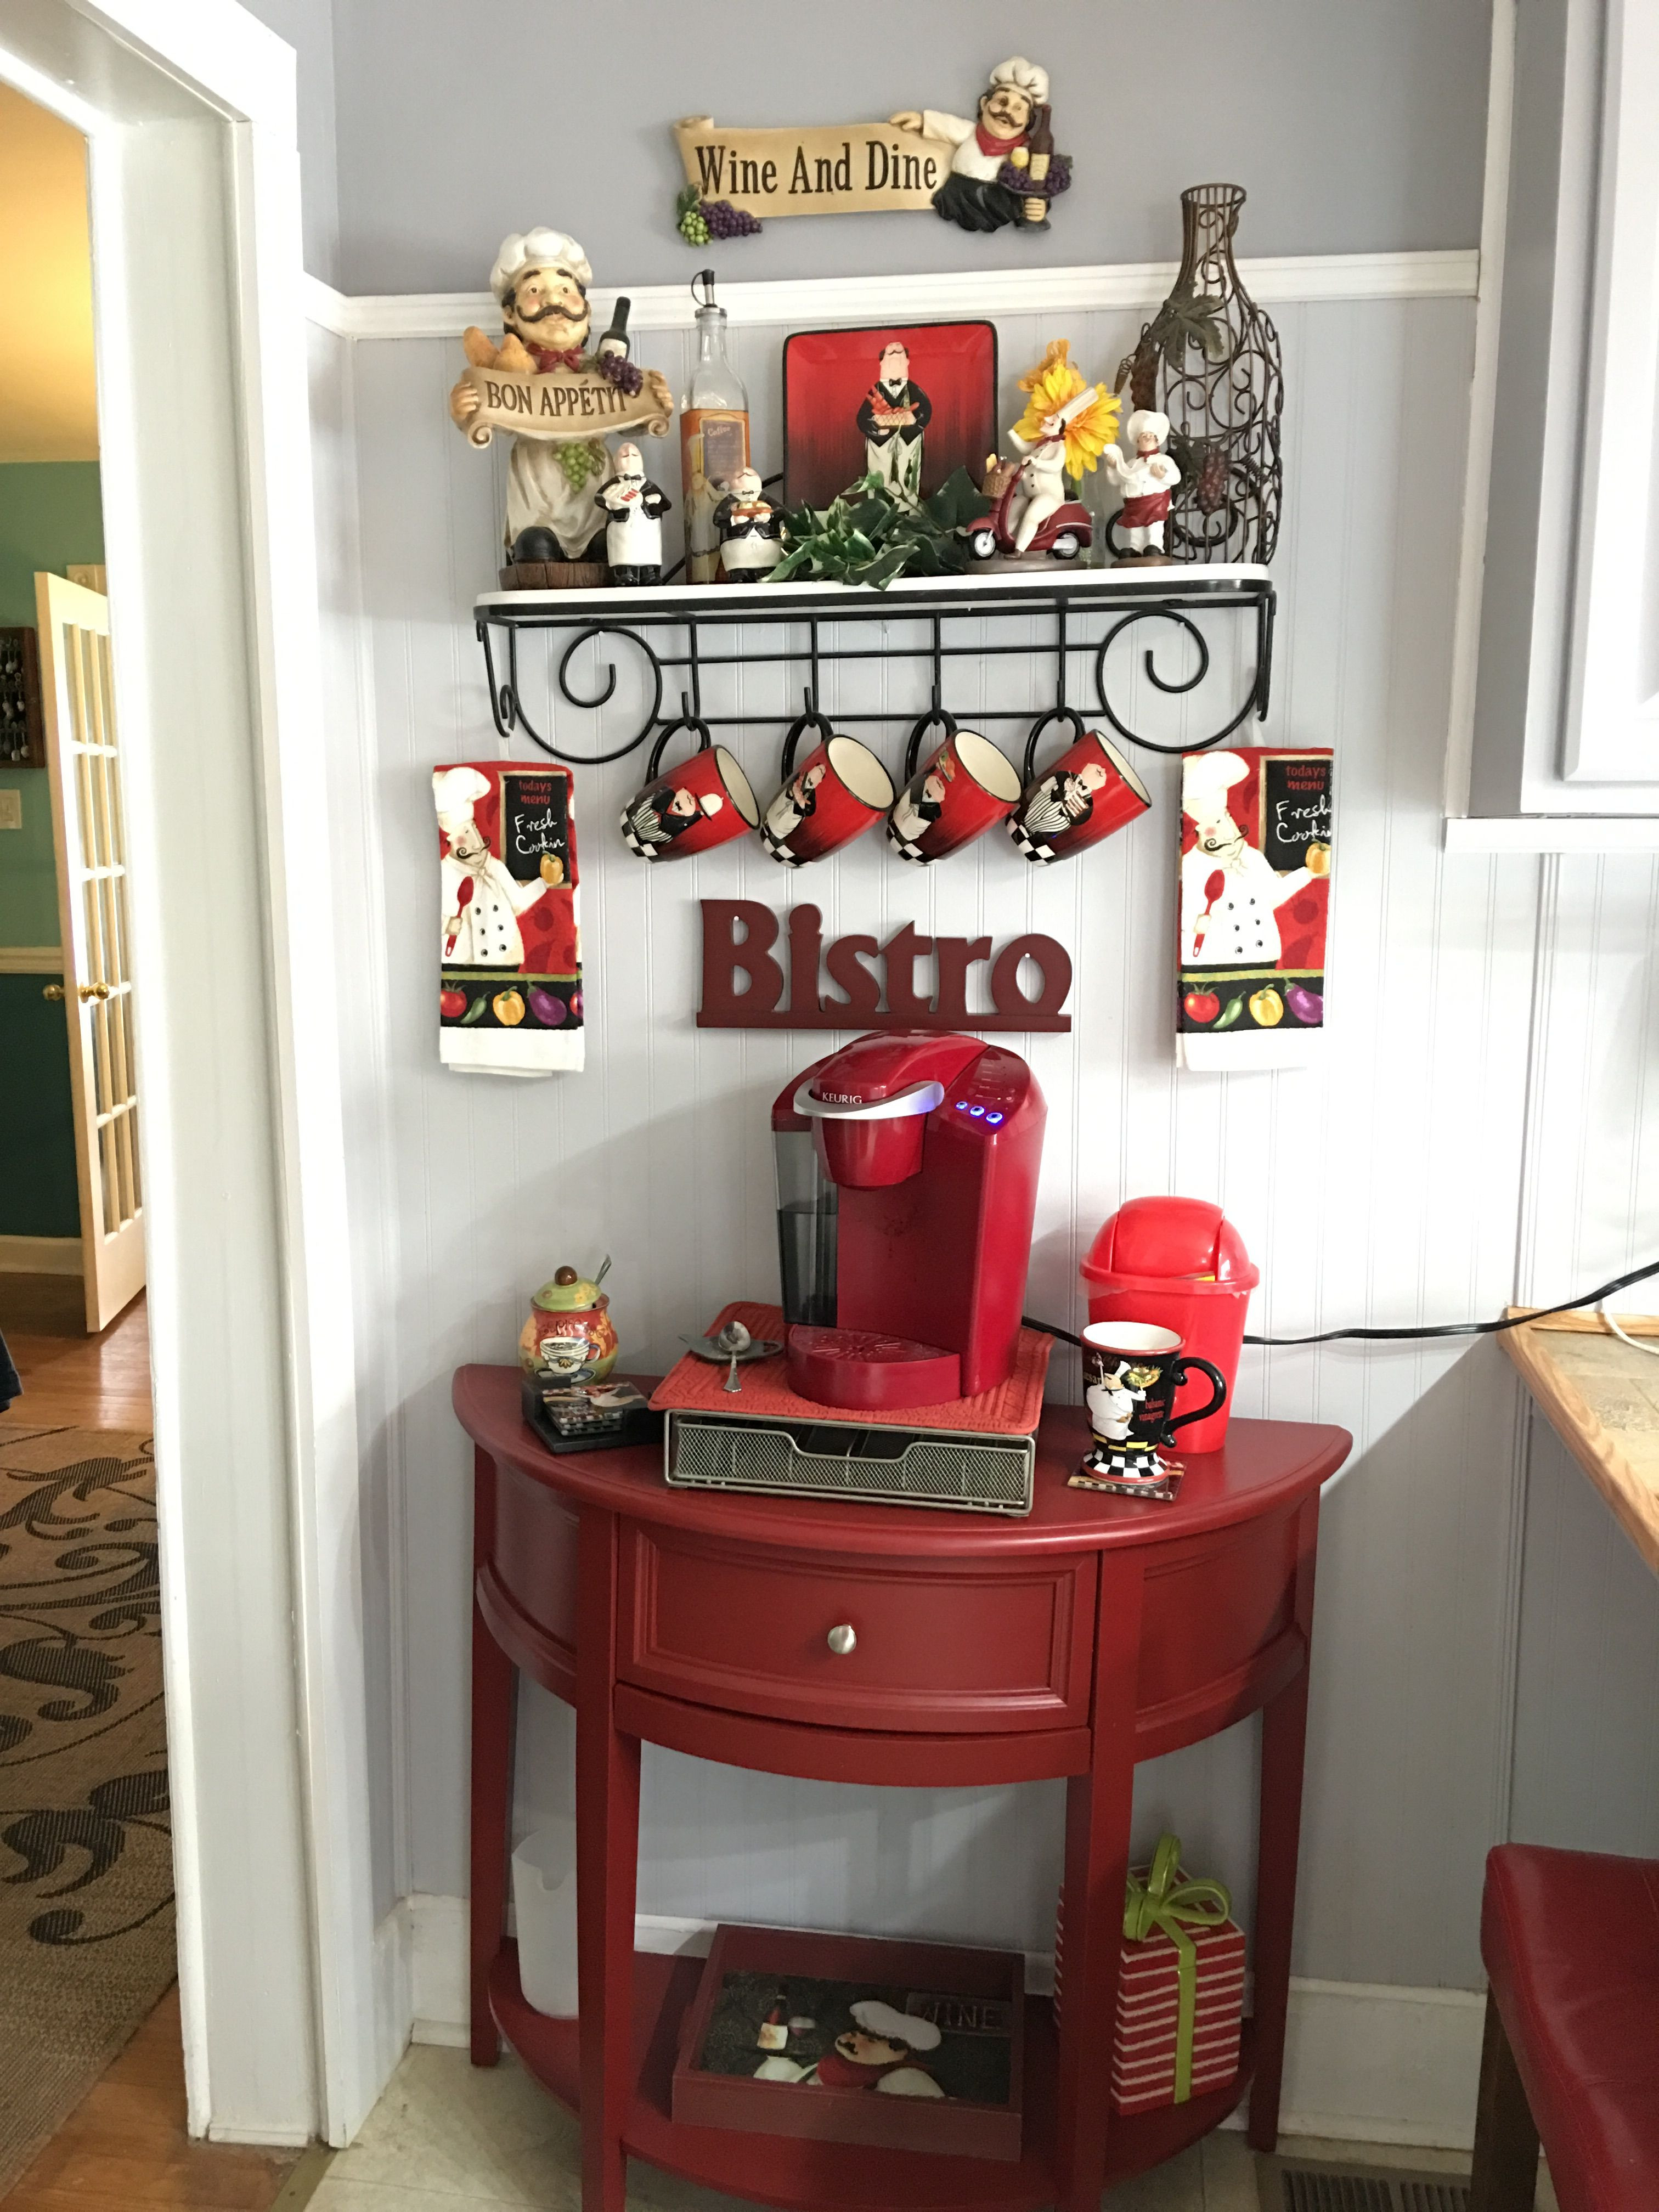 Best ideas about Kitchen Decorating Accessories . Save or Pin Chef bistro decor home Now.